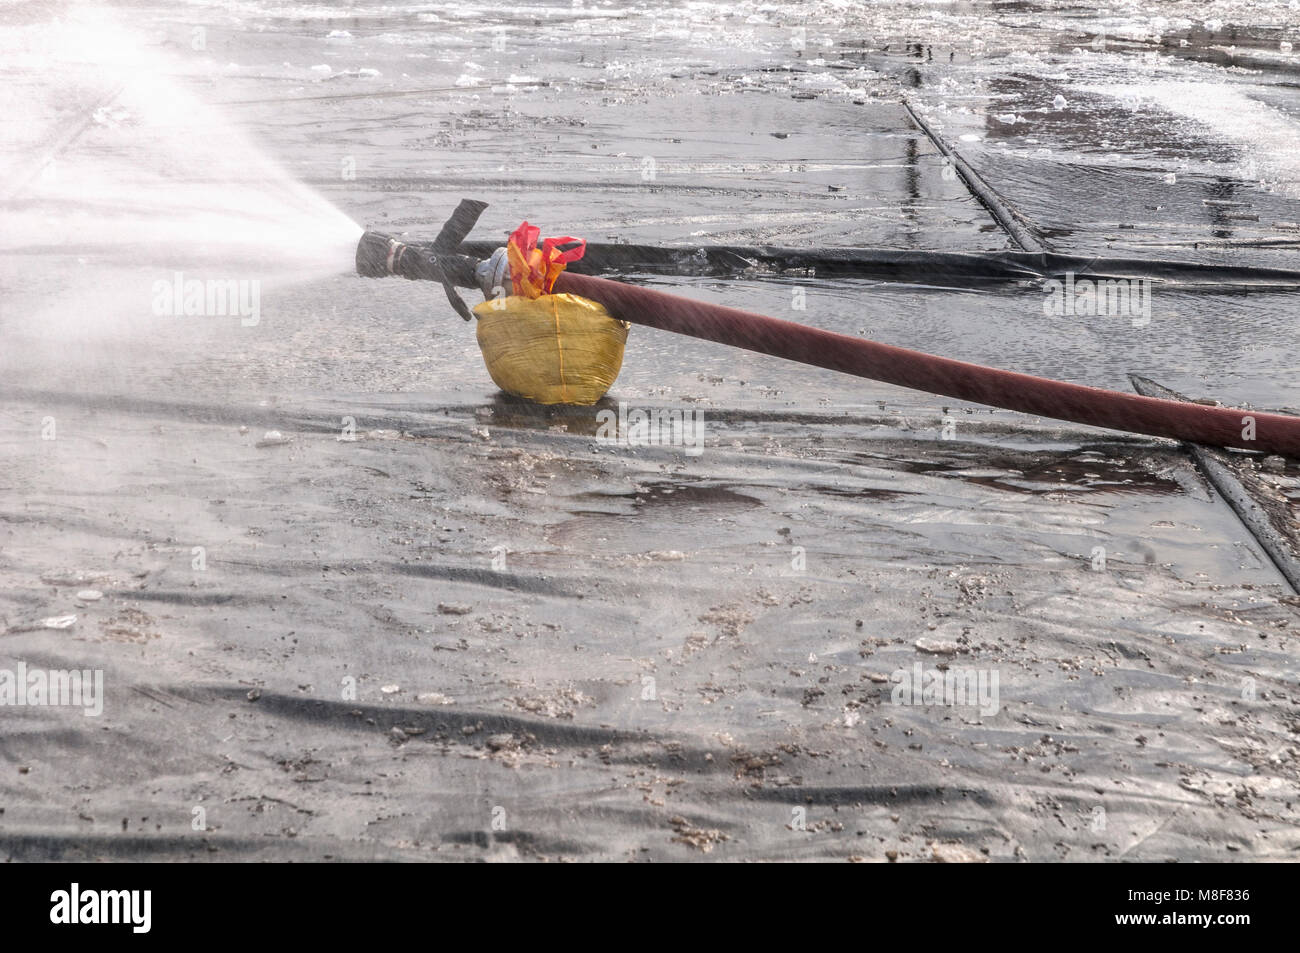 fire hose resting on a yellow bag sprays water spray over an ice rink - Stock Image